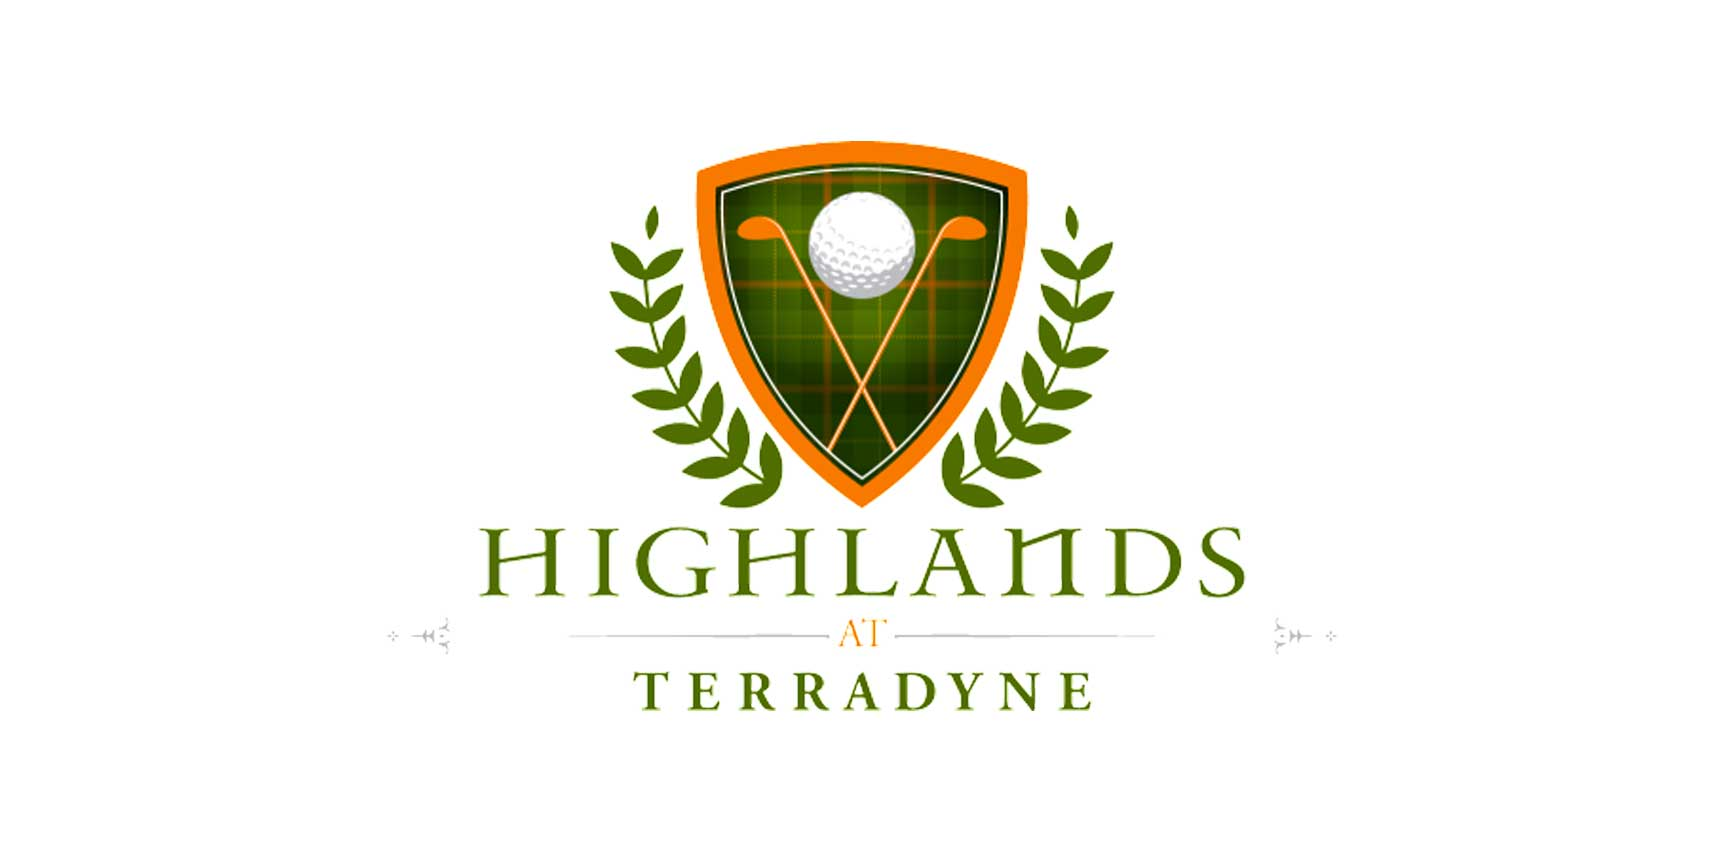 House for sale: Highlands at Terradyne